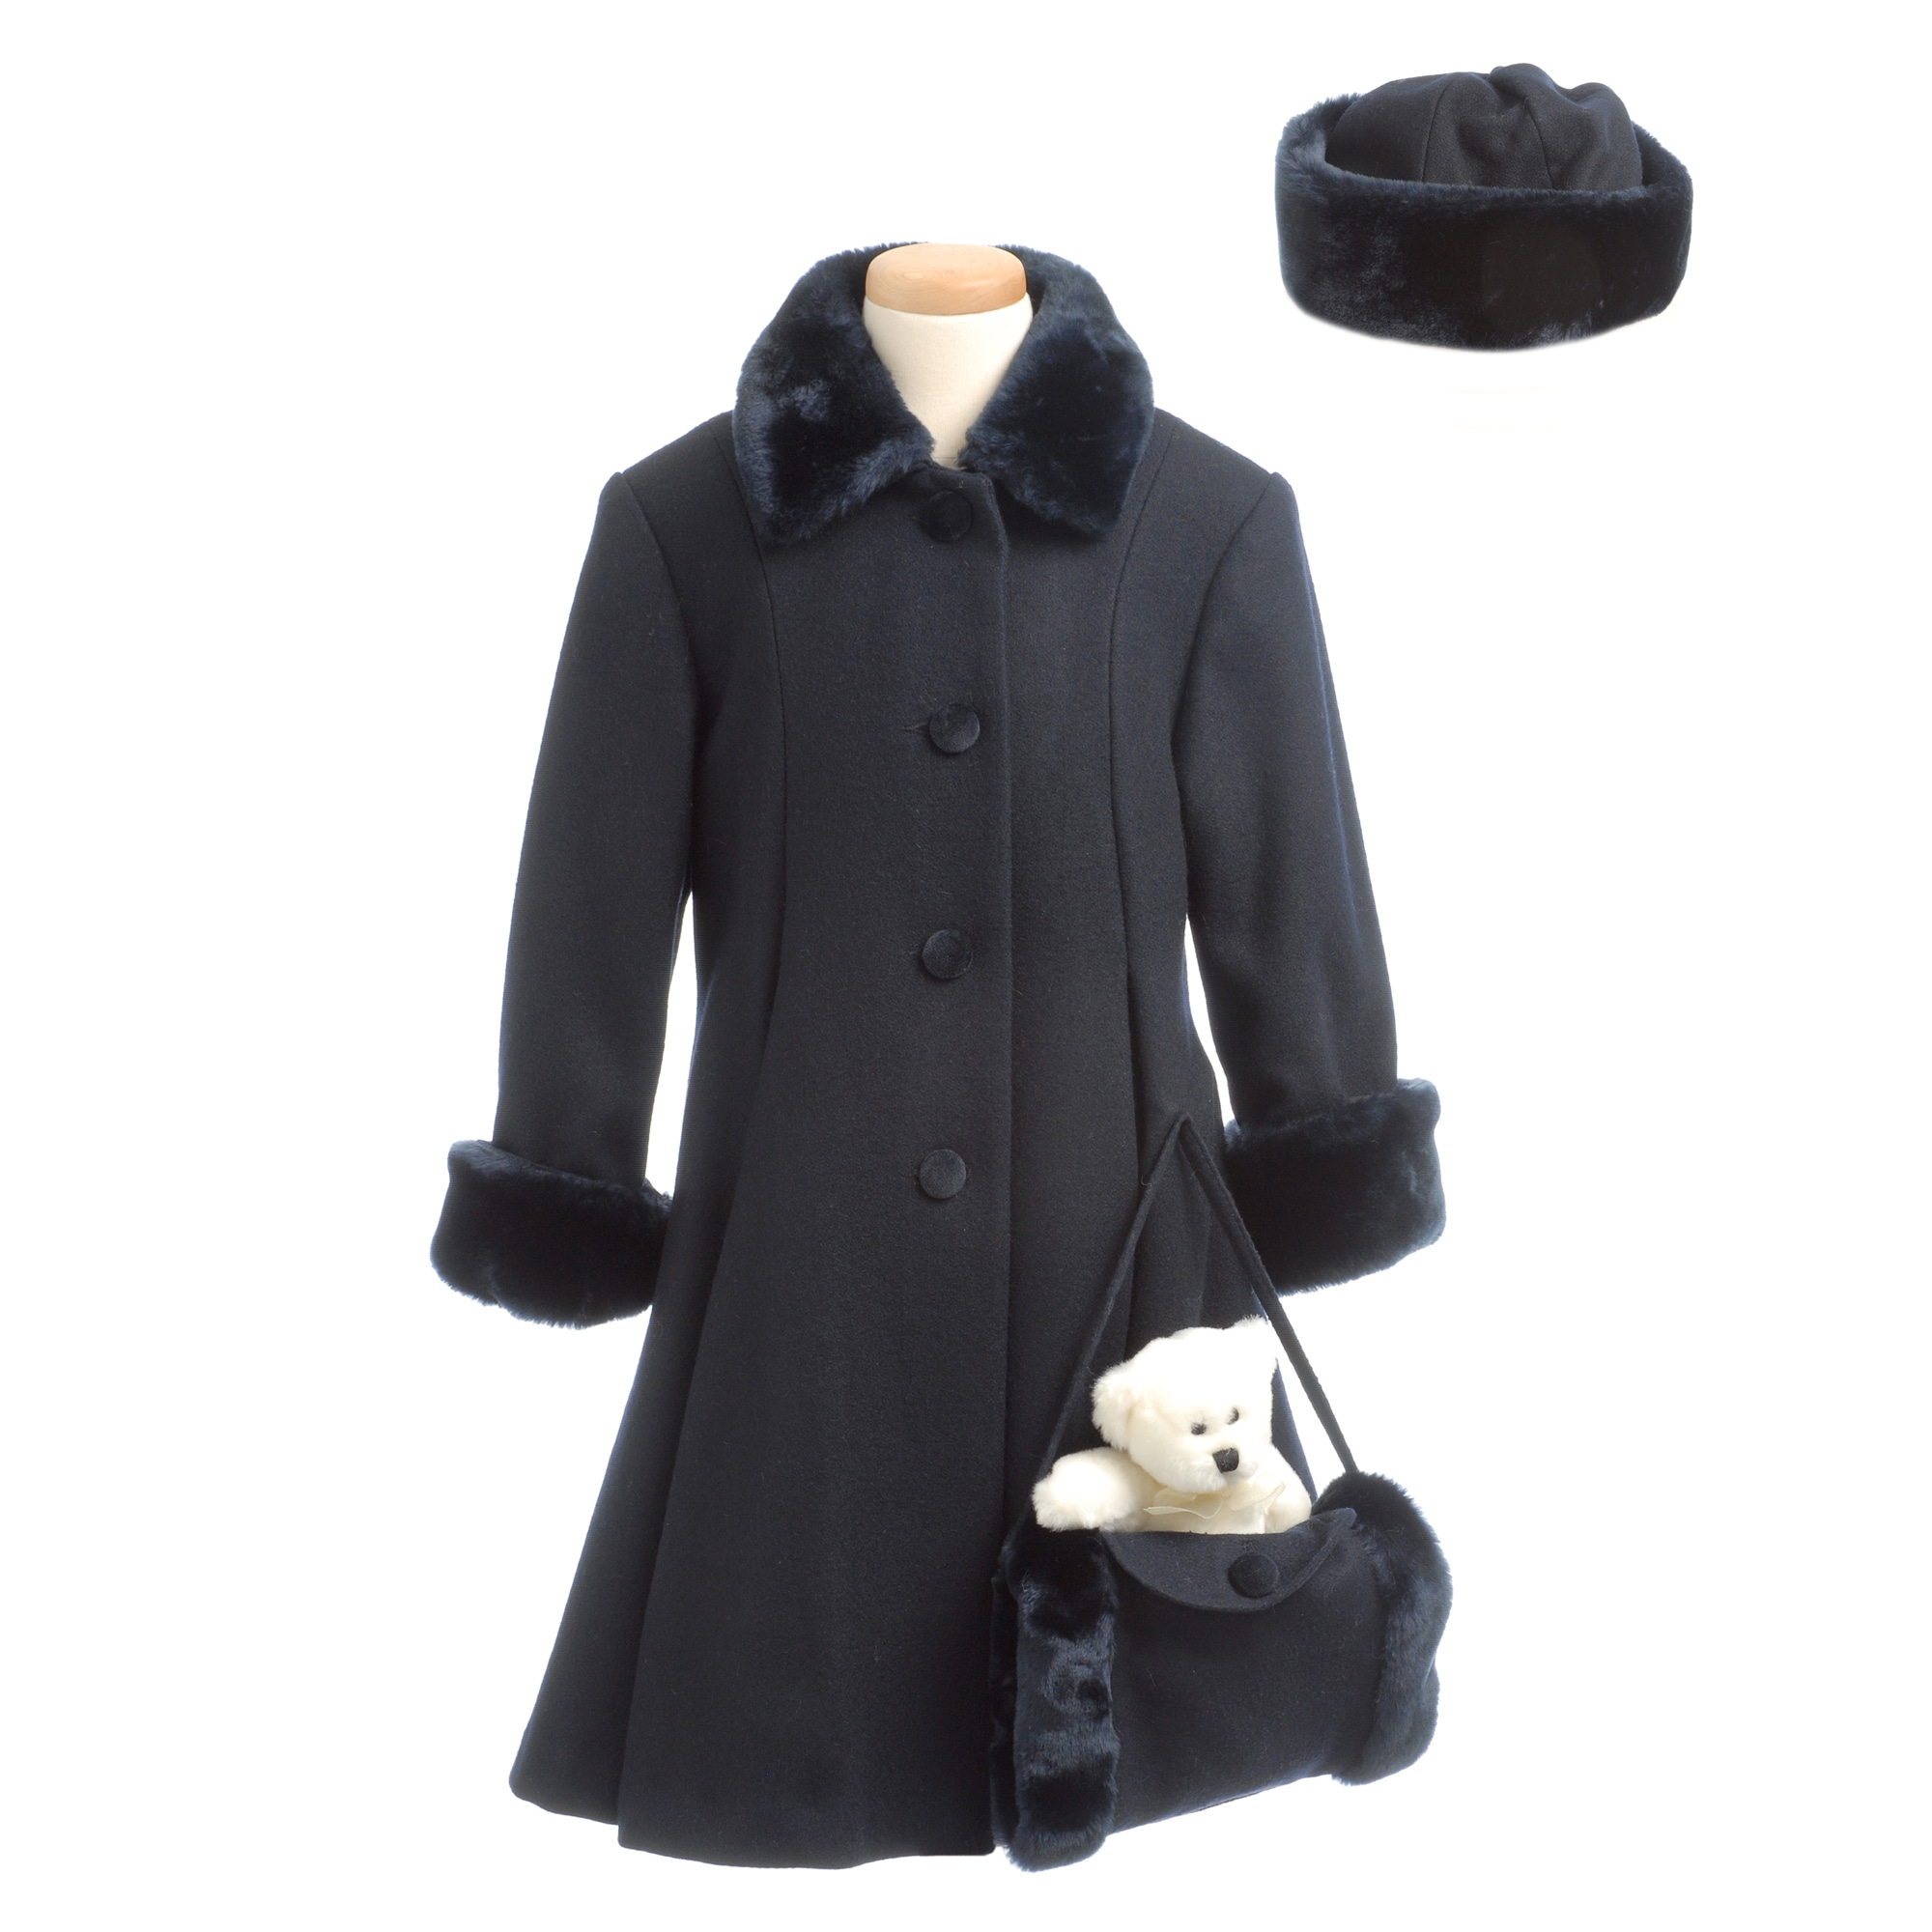 Trilogi Collection Girl's Wool-blend Faux Fur-trimmed Coat